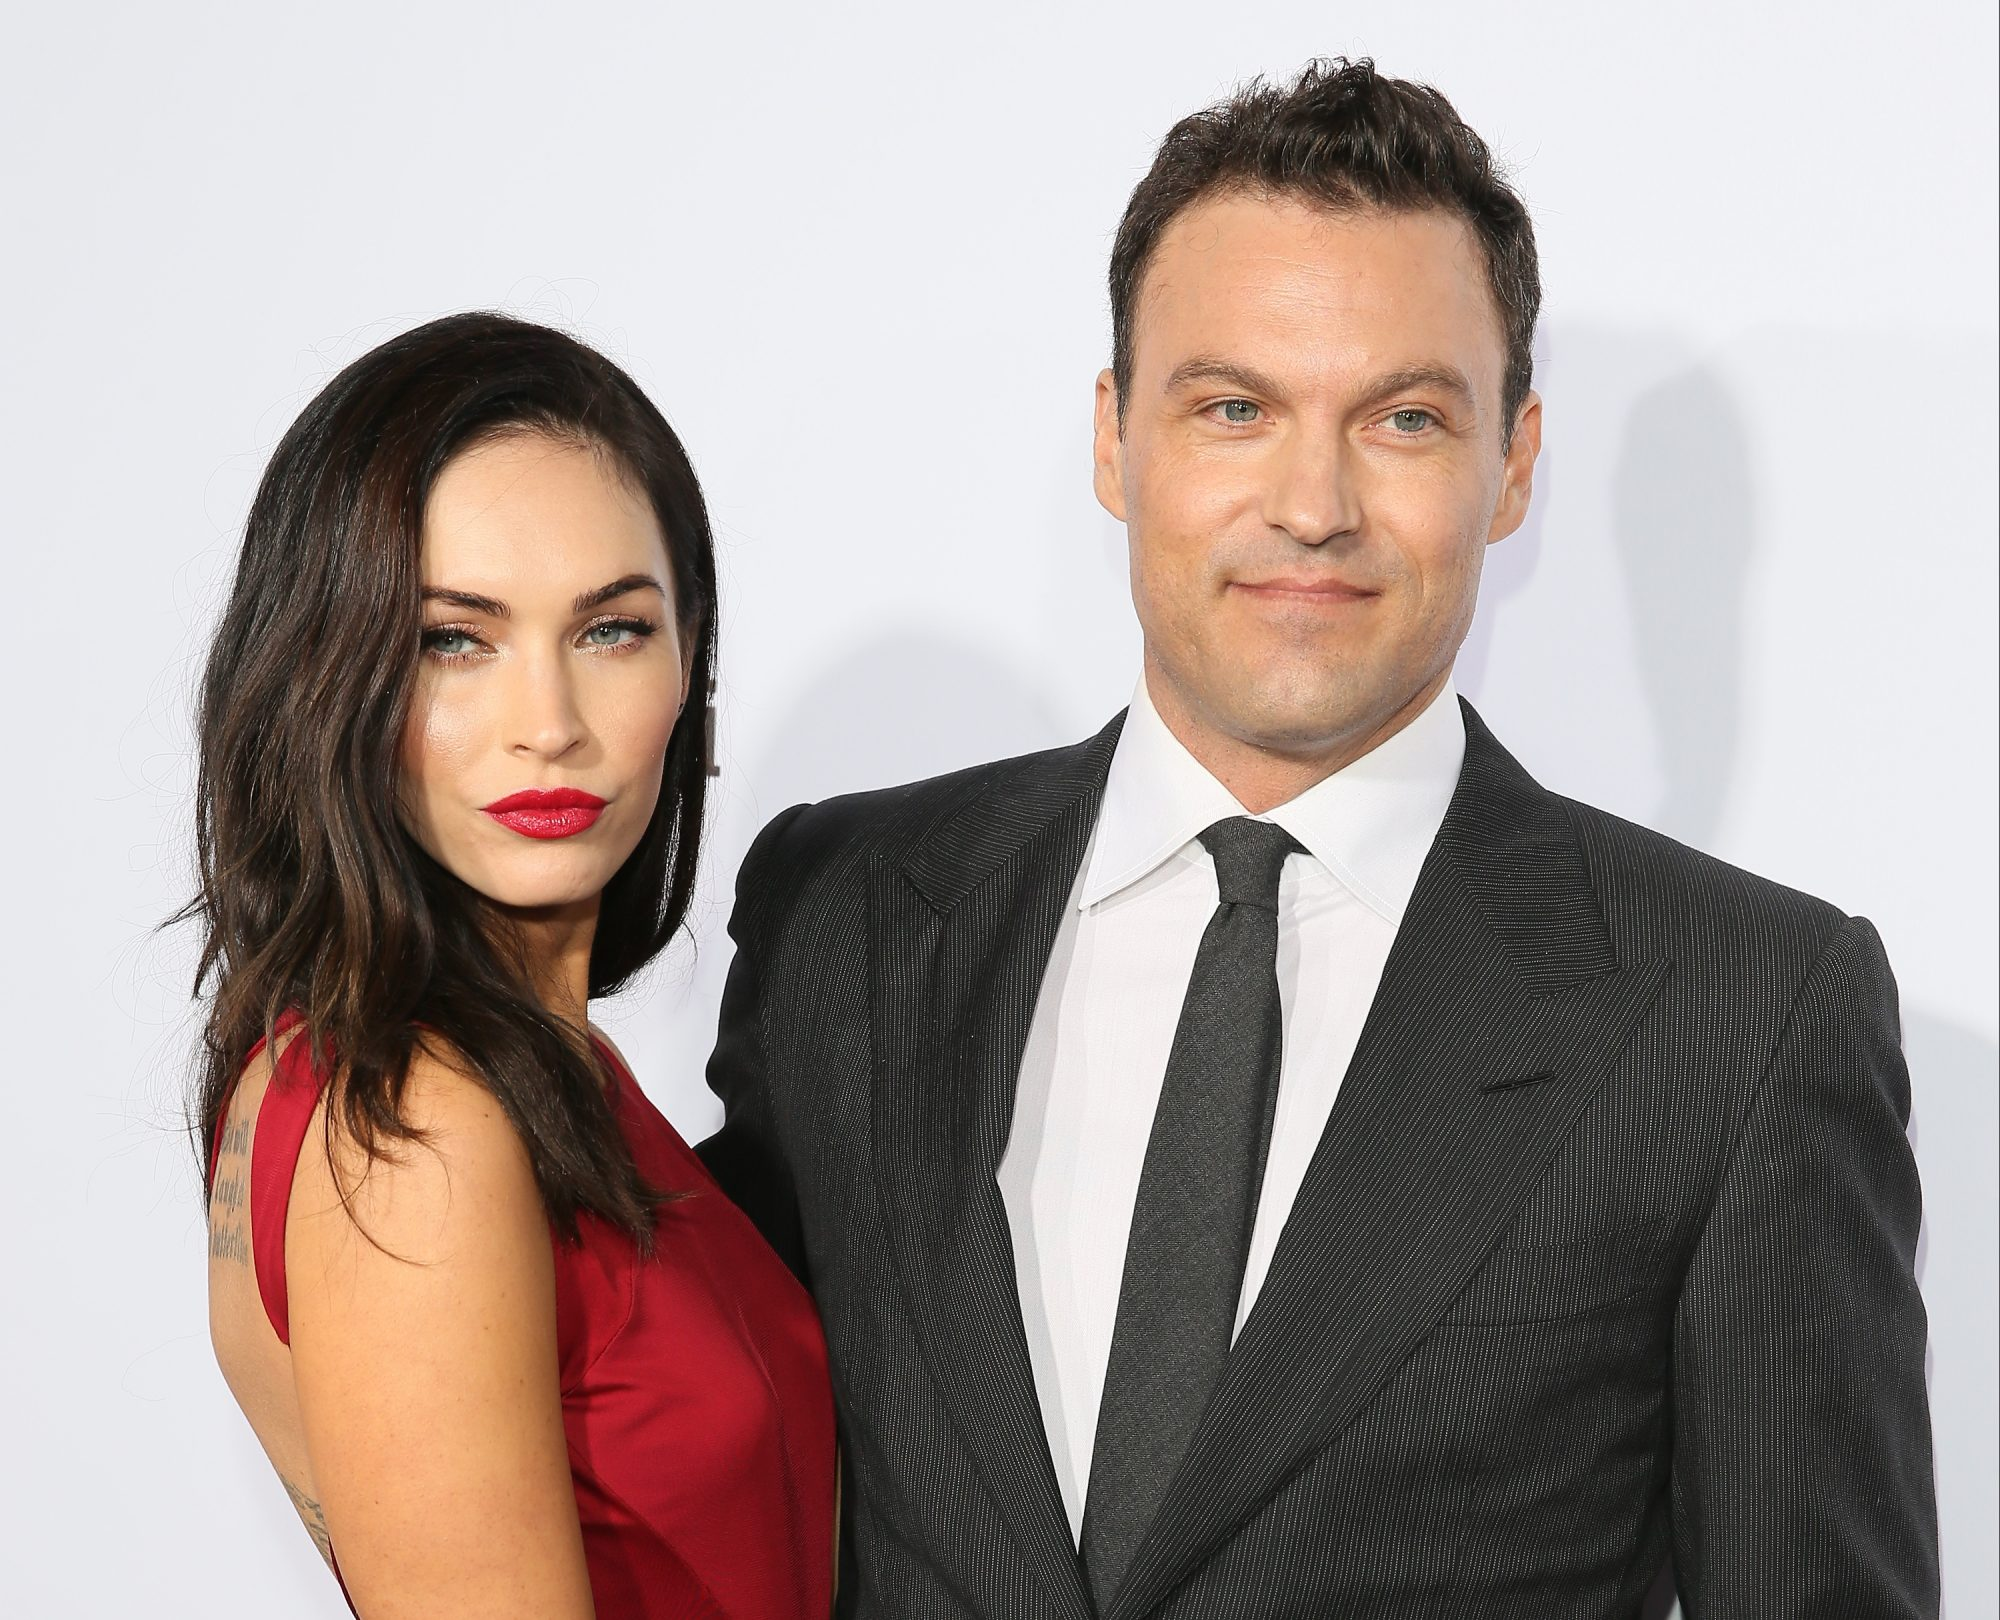 brian-austin-green-says-you-never-know-when-asked-about-reuniting-with-megan-fox